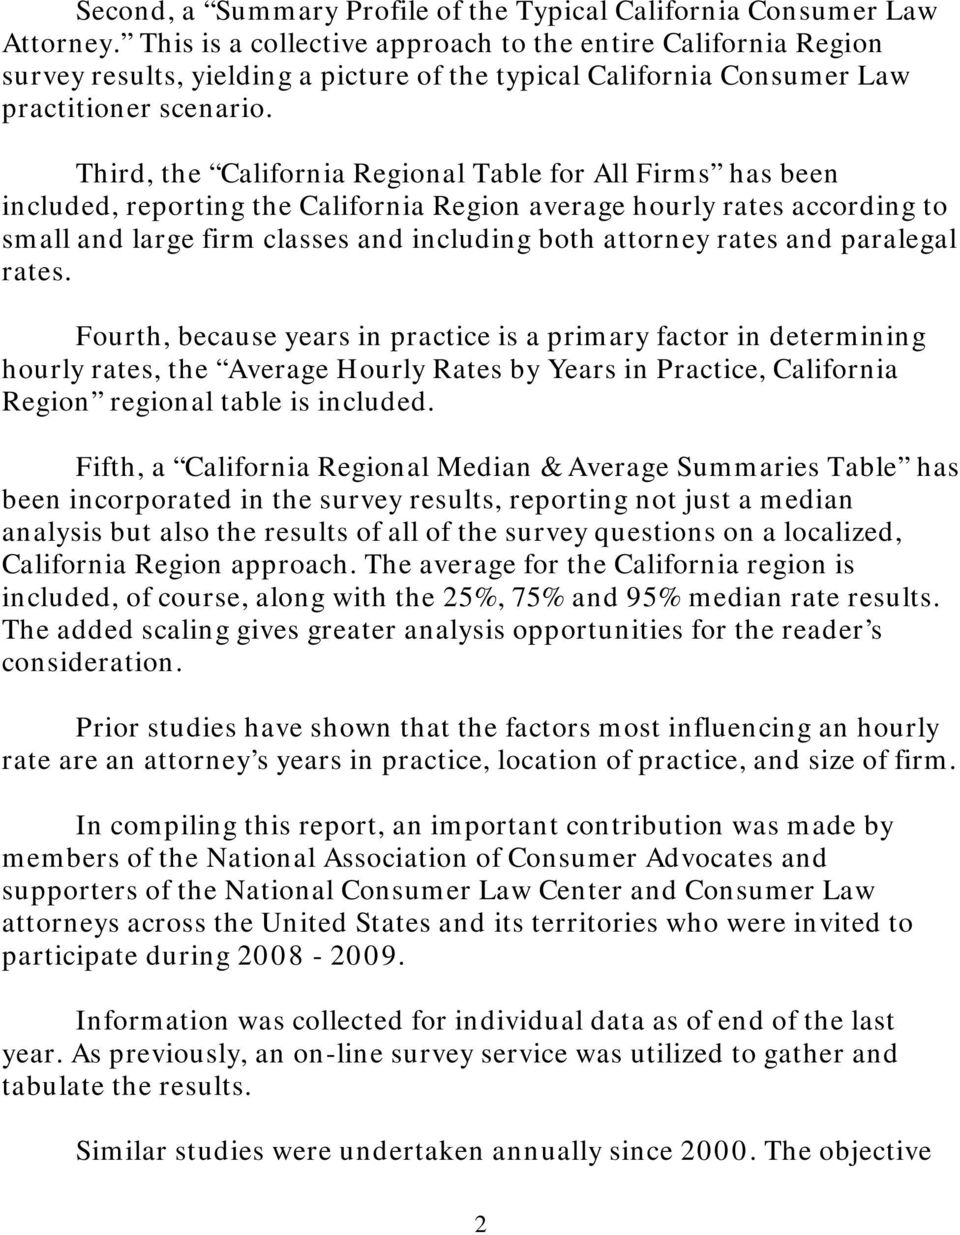 Third, the California Regional Table for All Firms has been included, reporting the California Region average hourly rates according to small and large firm classes and including both attorney rates